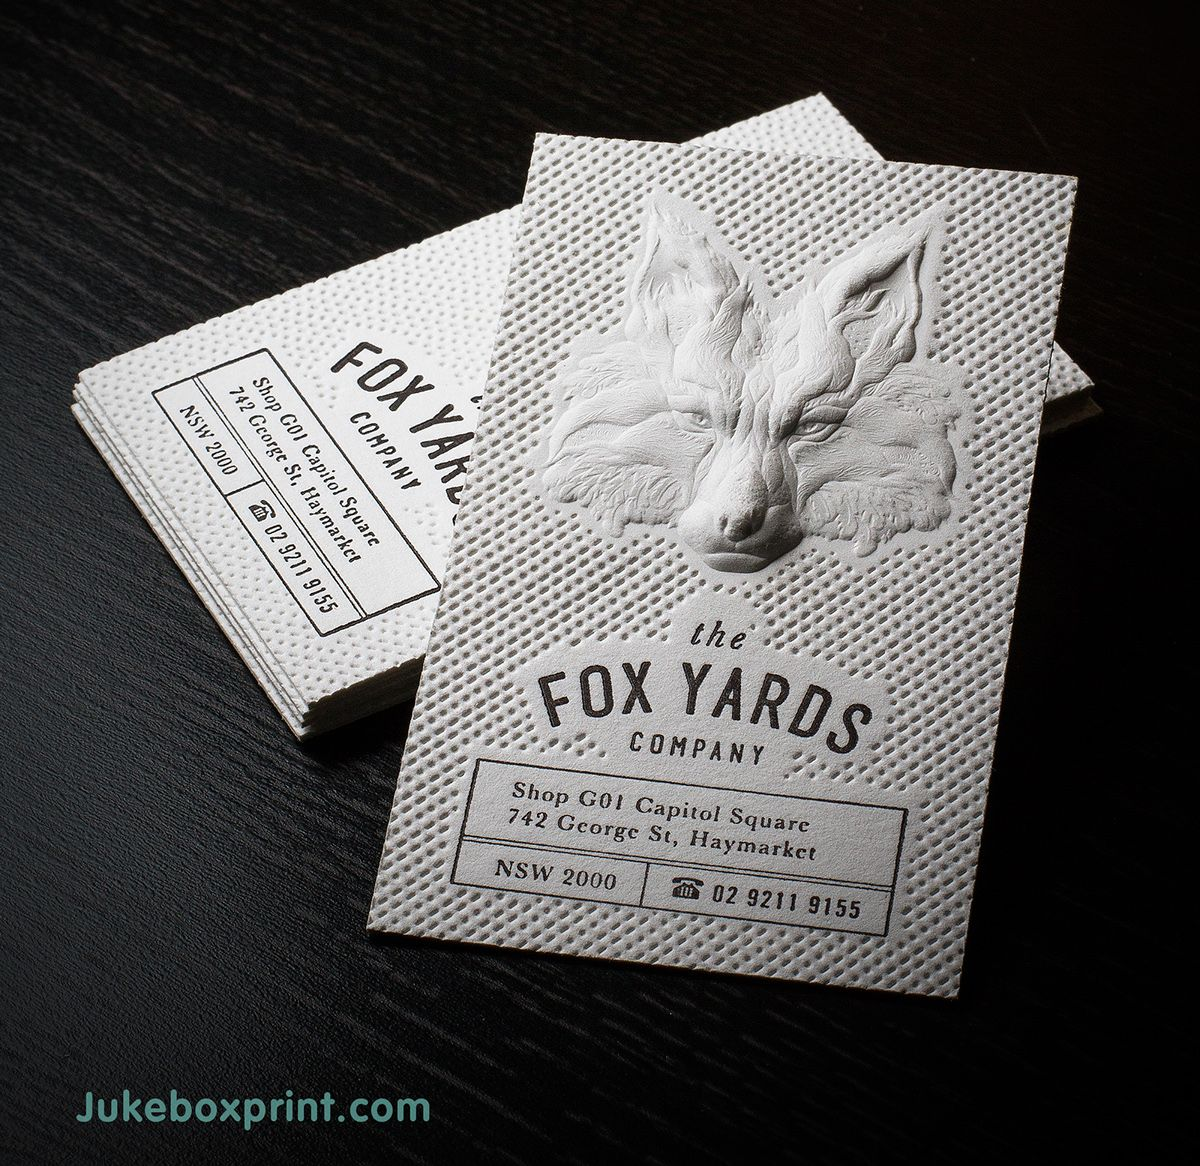 50 inspiring examples of letterpress business cards | Business cards ...